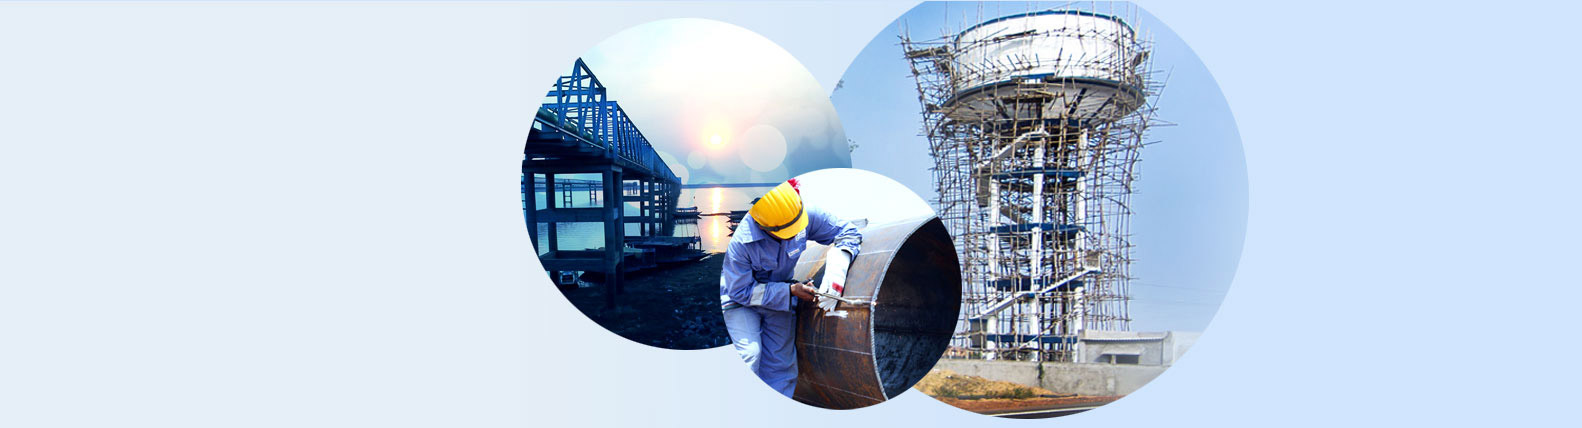 Collage images of Intake Jetty & construction of OHR of WTP.